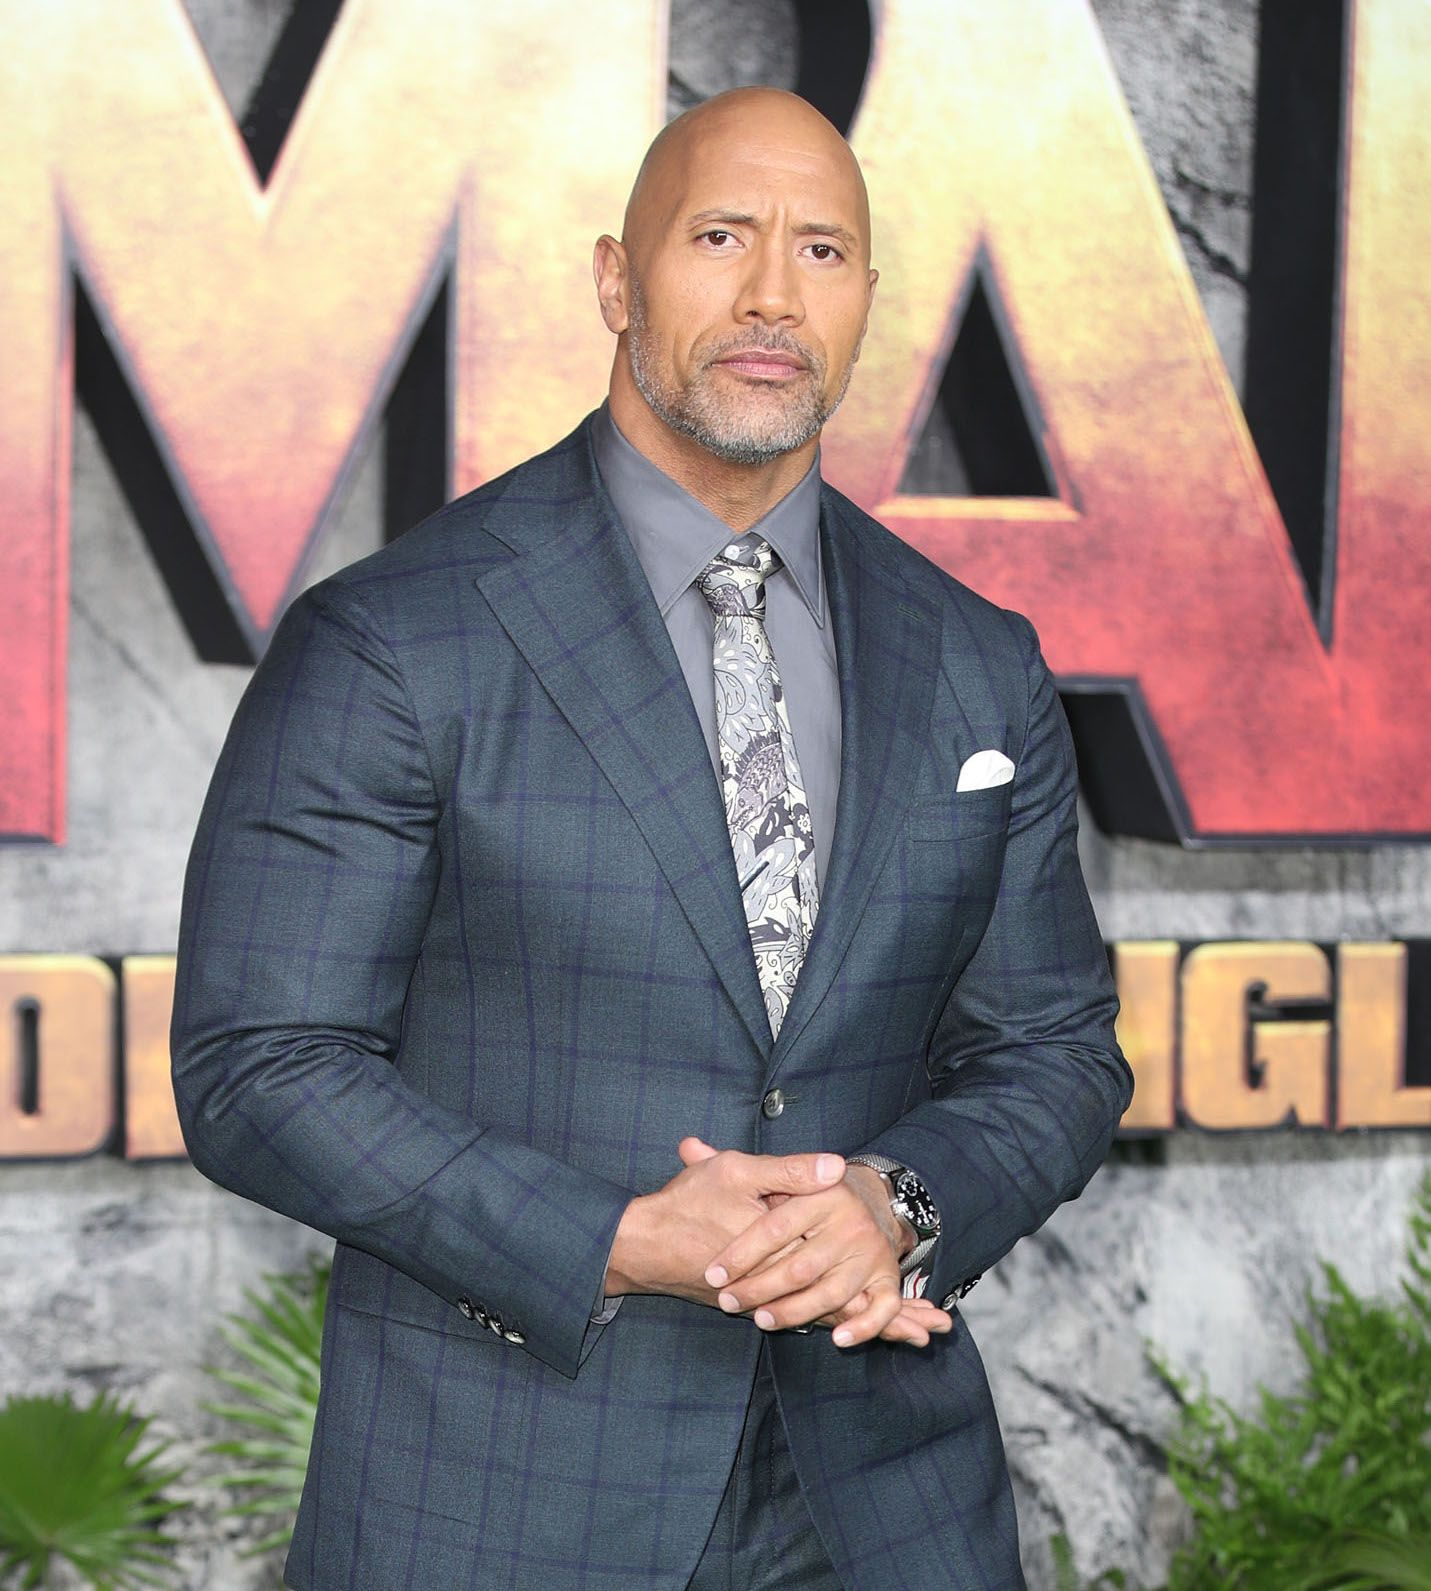 The Rock Asks Donald Trump 'Where Are You? Where Is Our Leader?' In Emotional Video Message